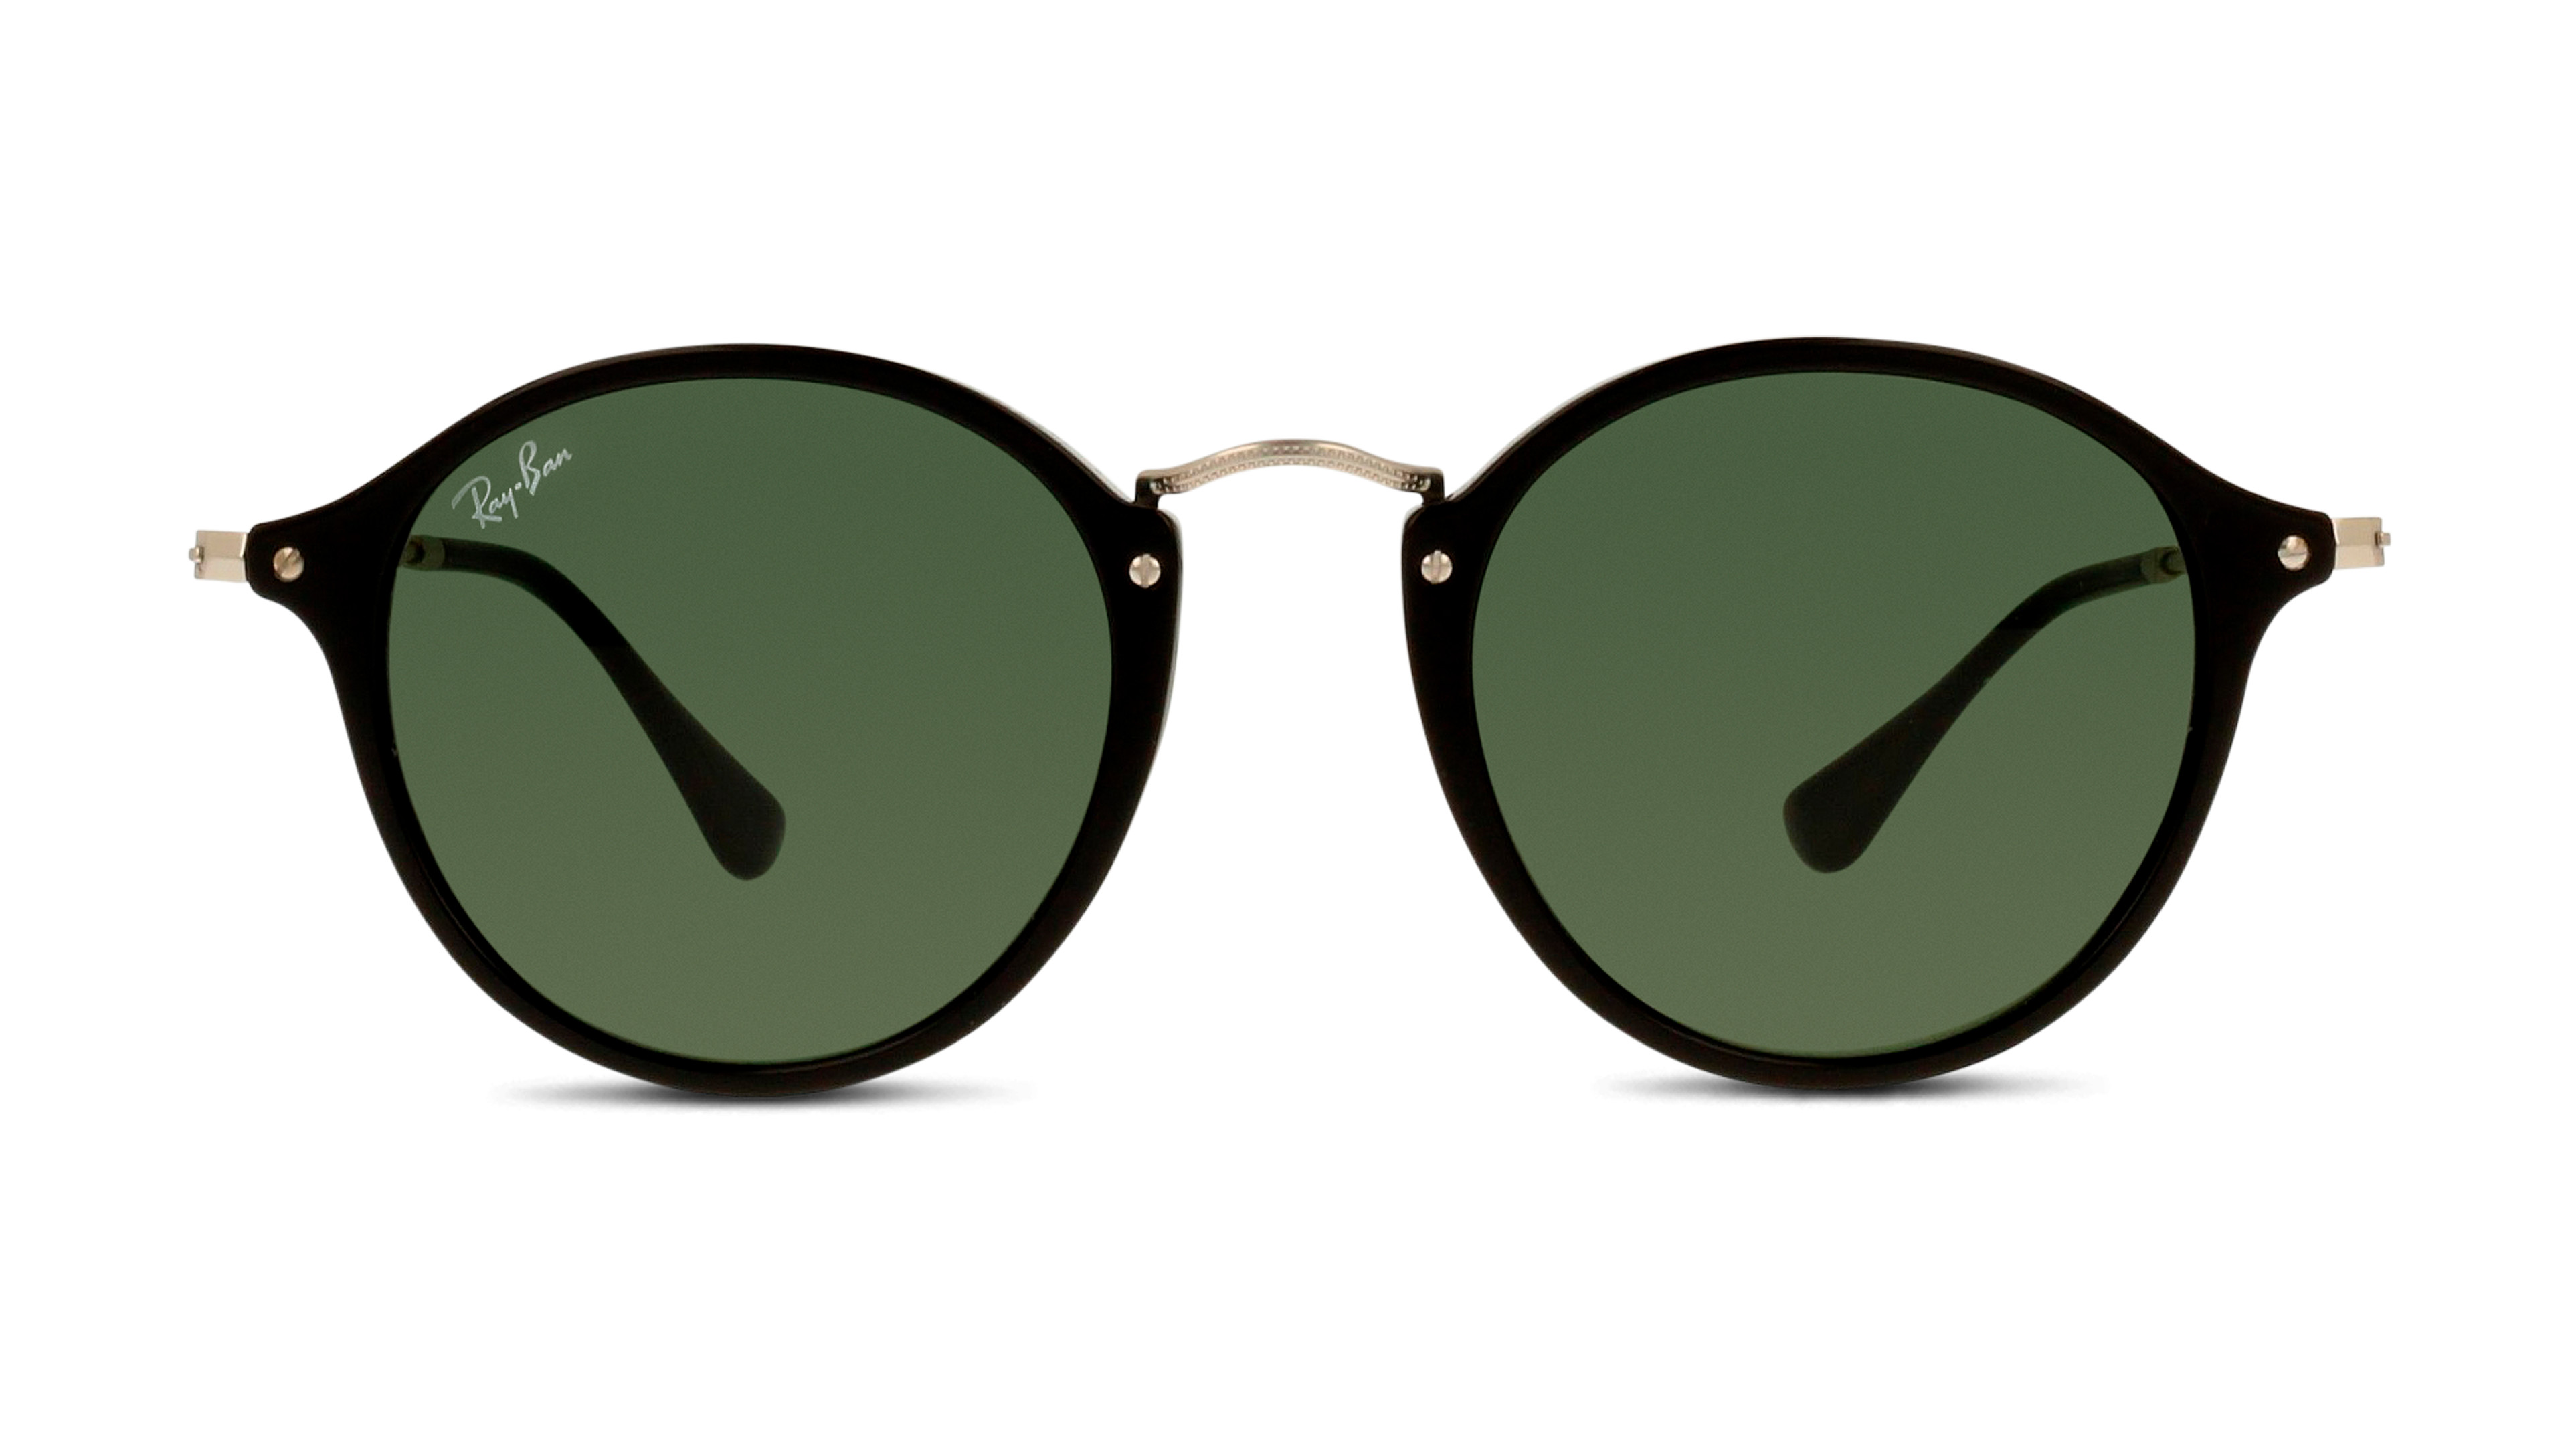 8053672358667_Front_RayBan